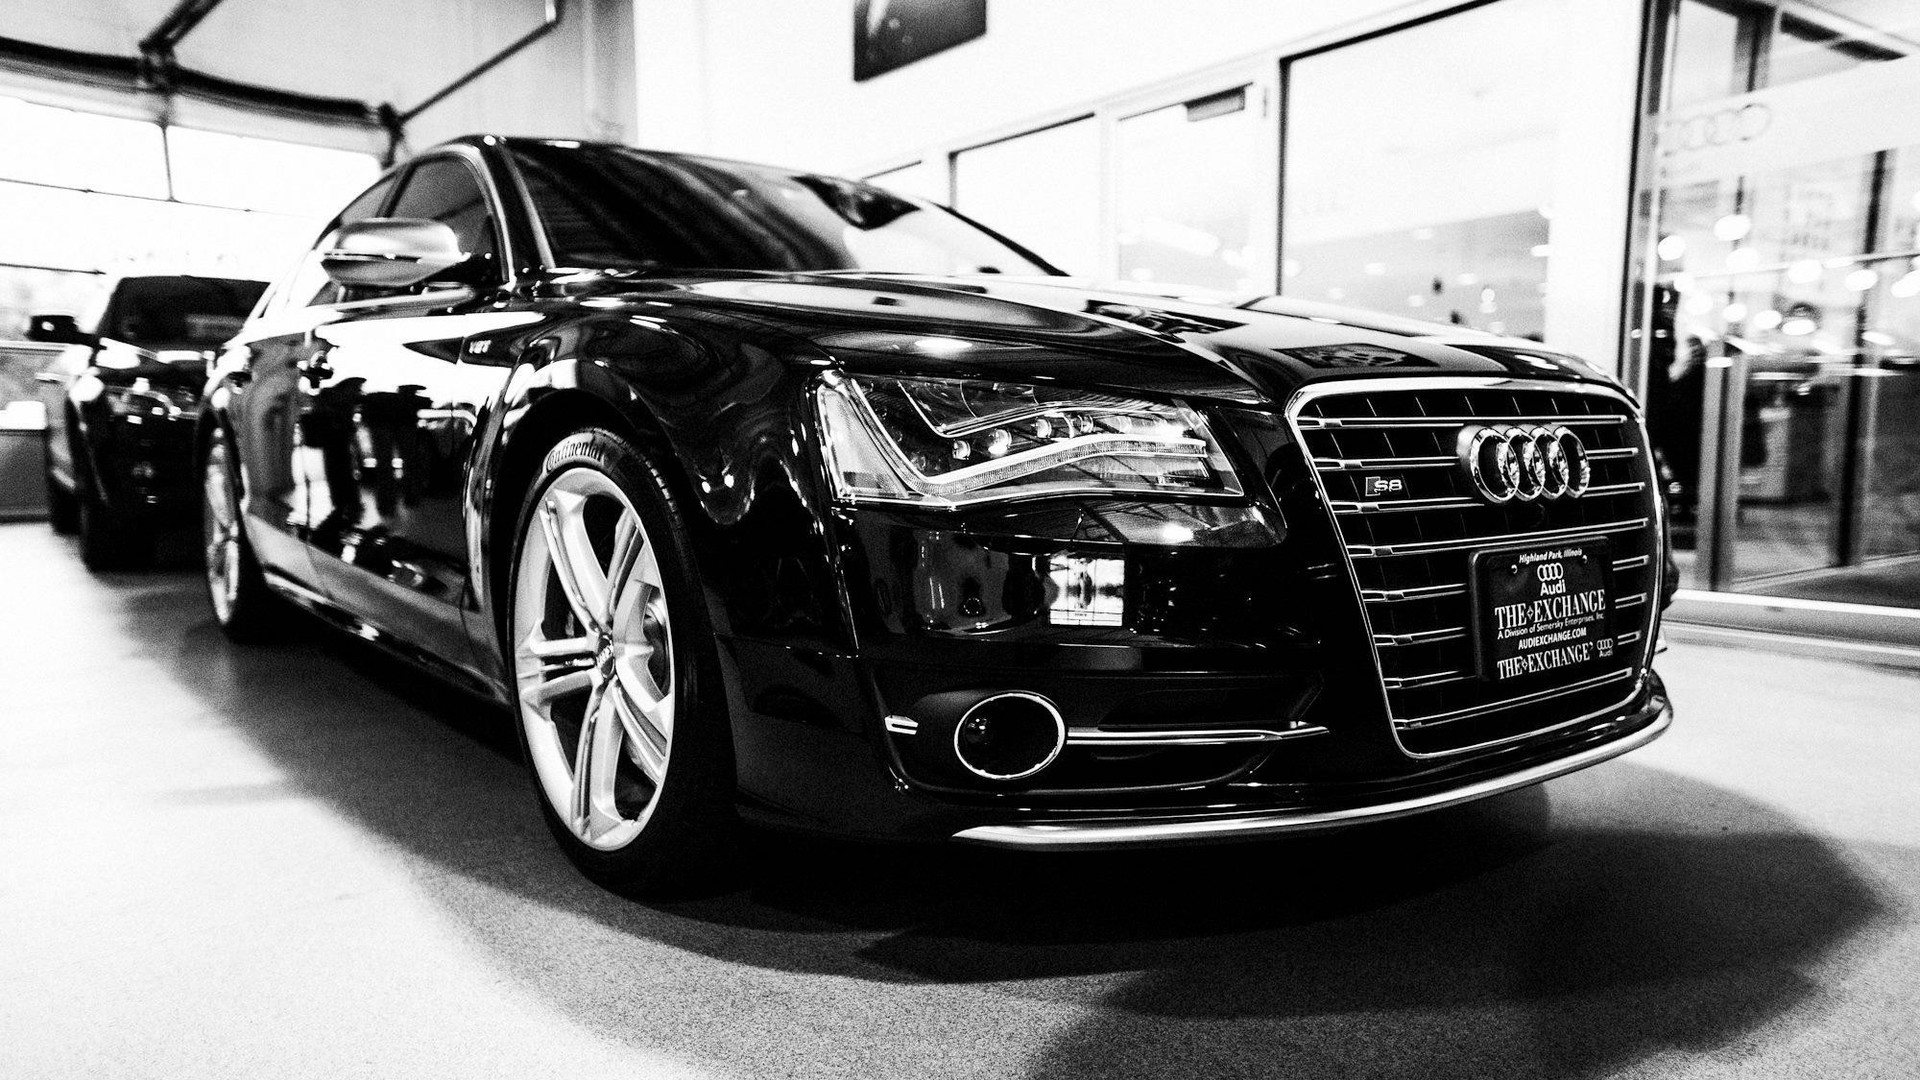 Black And White Cars Audi A6 Wallpaper Allwallpaper In